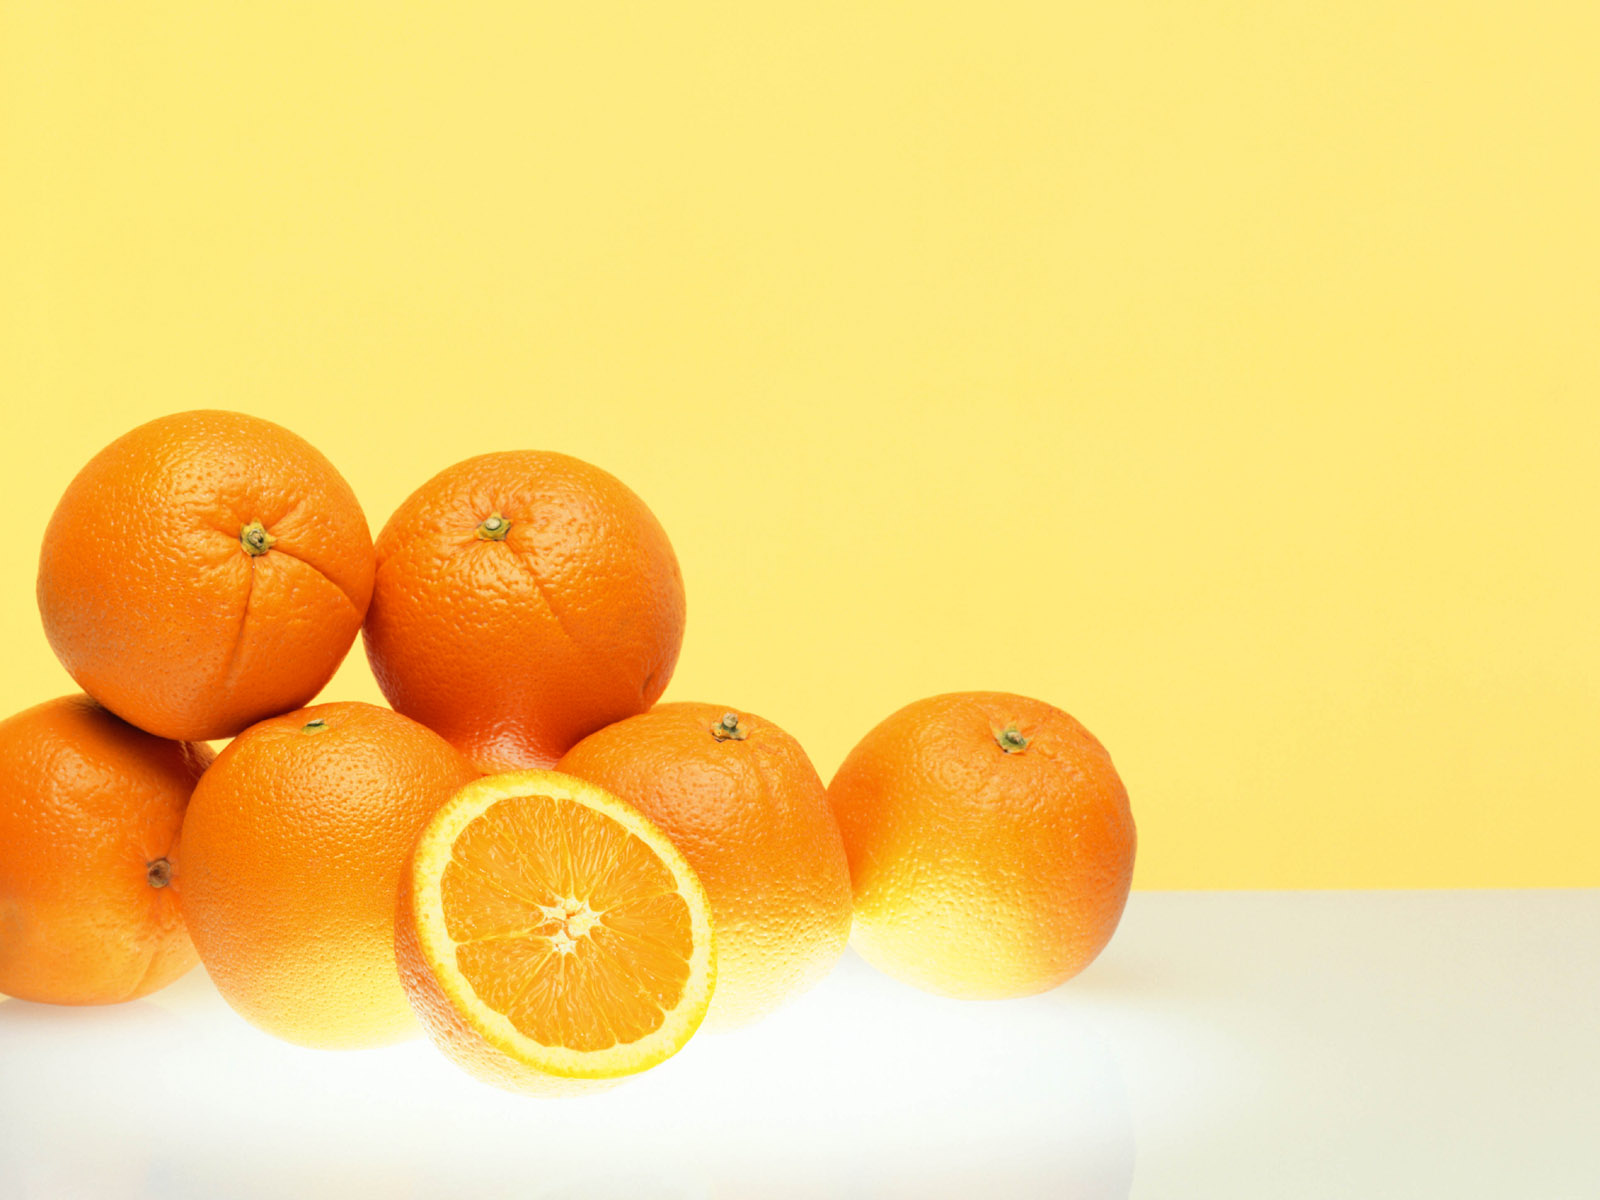 Orange Fruit HD Wallpaper Background Images 1600x1200